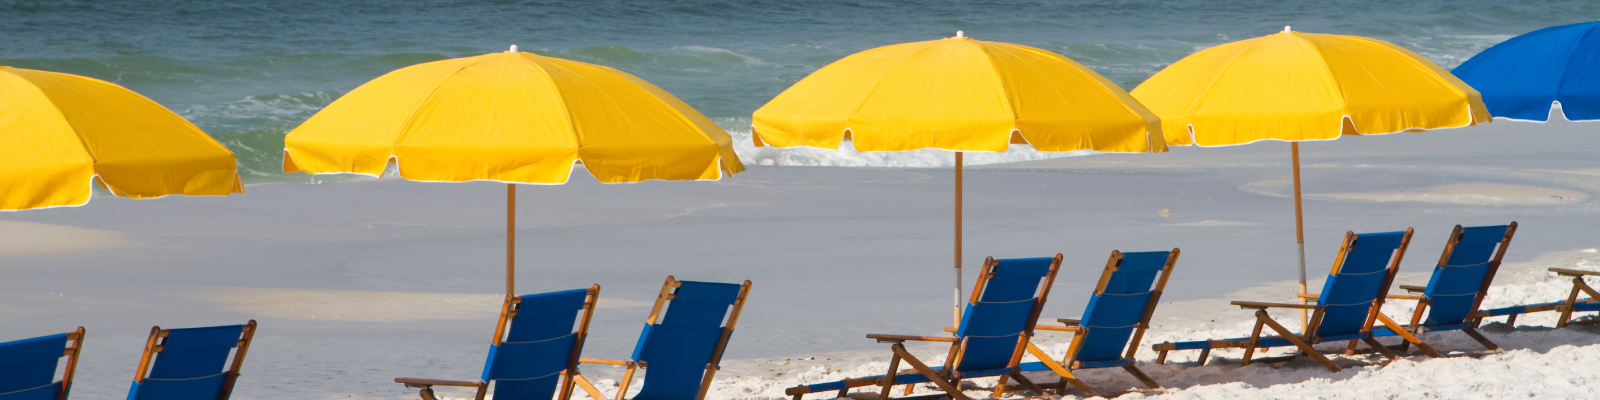 Beach Umbrellas & Chairs